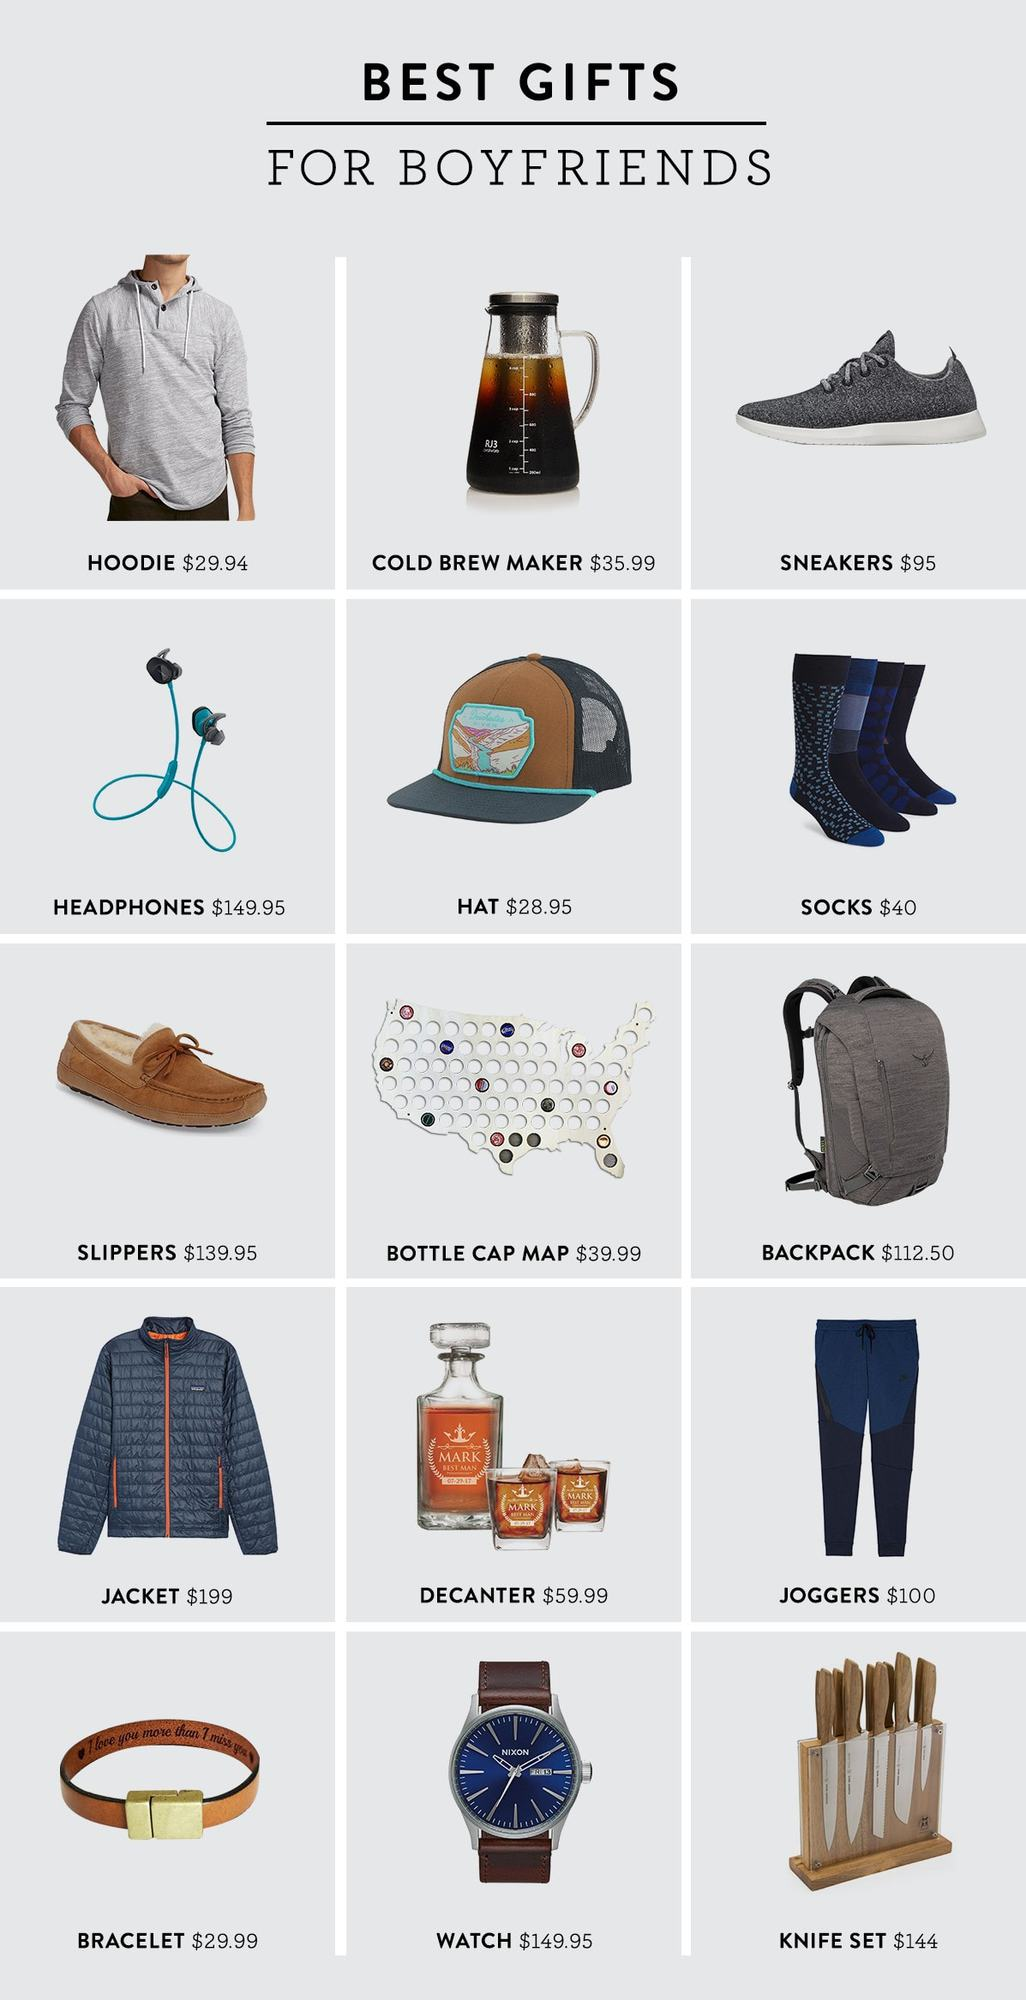 Don't know what to get your man for the holidays? Check out this gift guide that rounds up the best gifts for boyfriends. Think functional and masculine! #holiday #shopping #giftguide